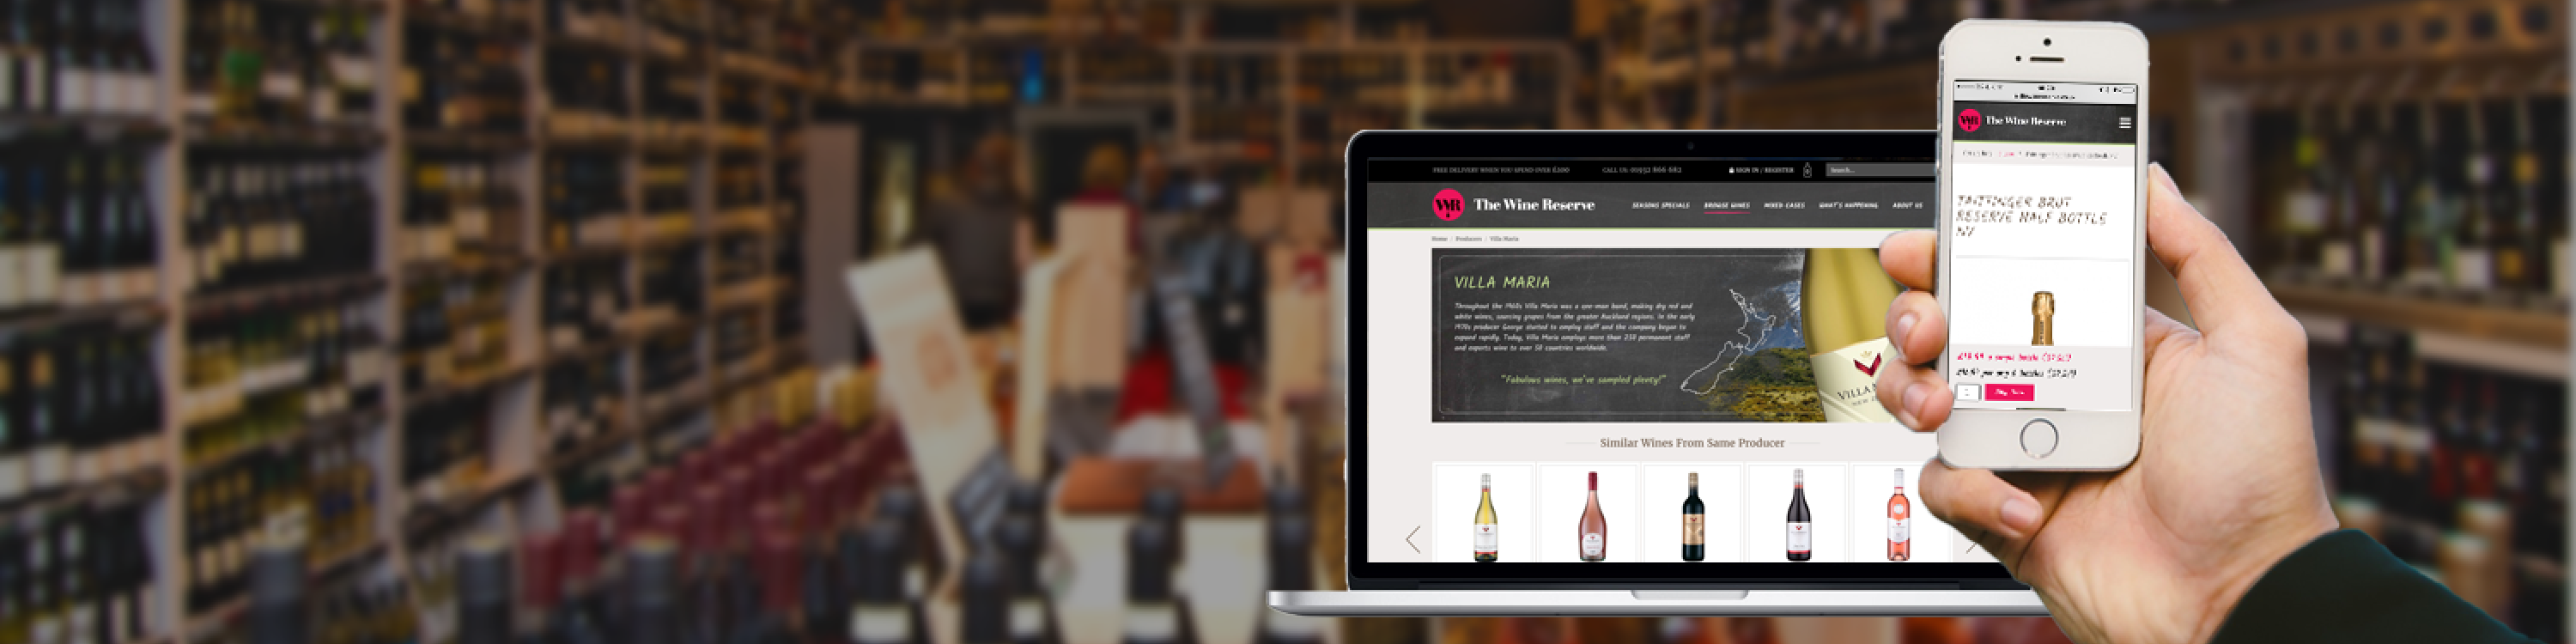 The Wine Reserve Shop